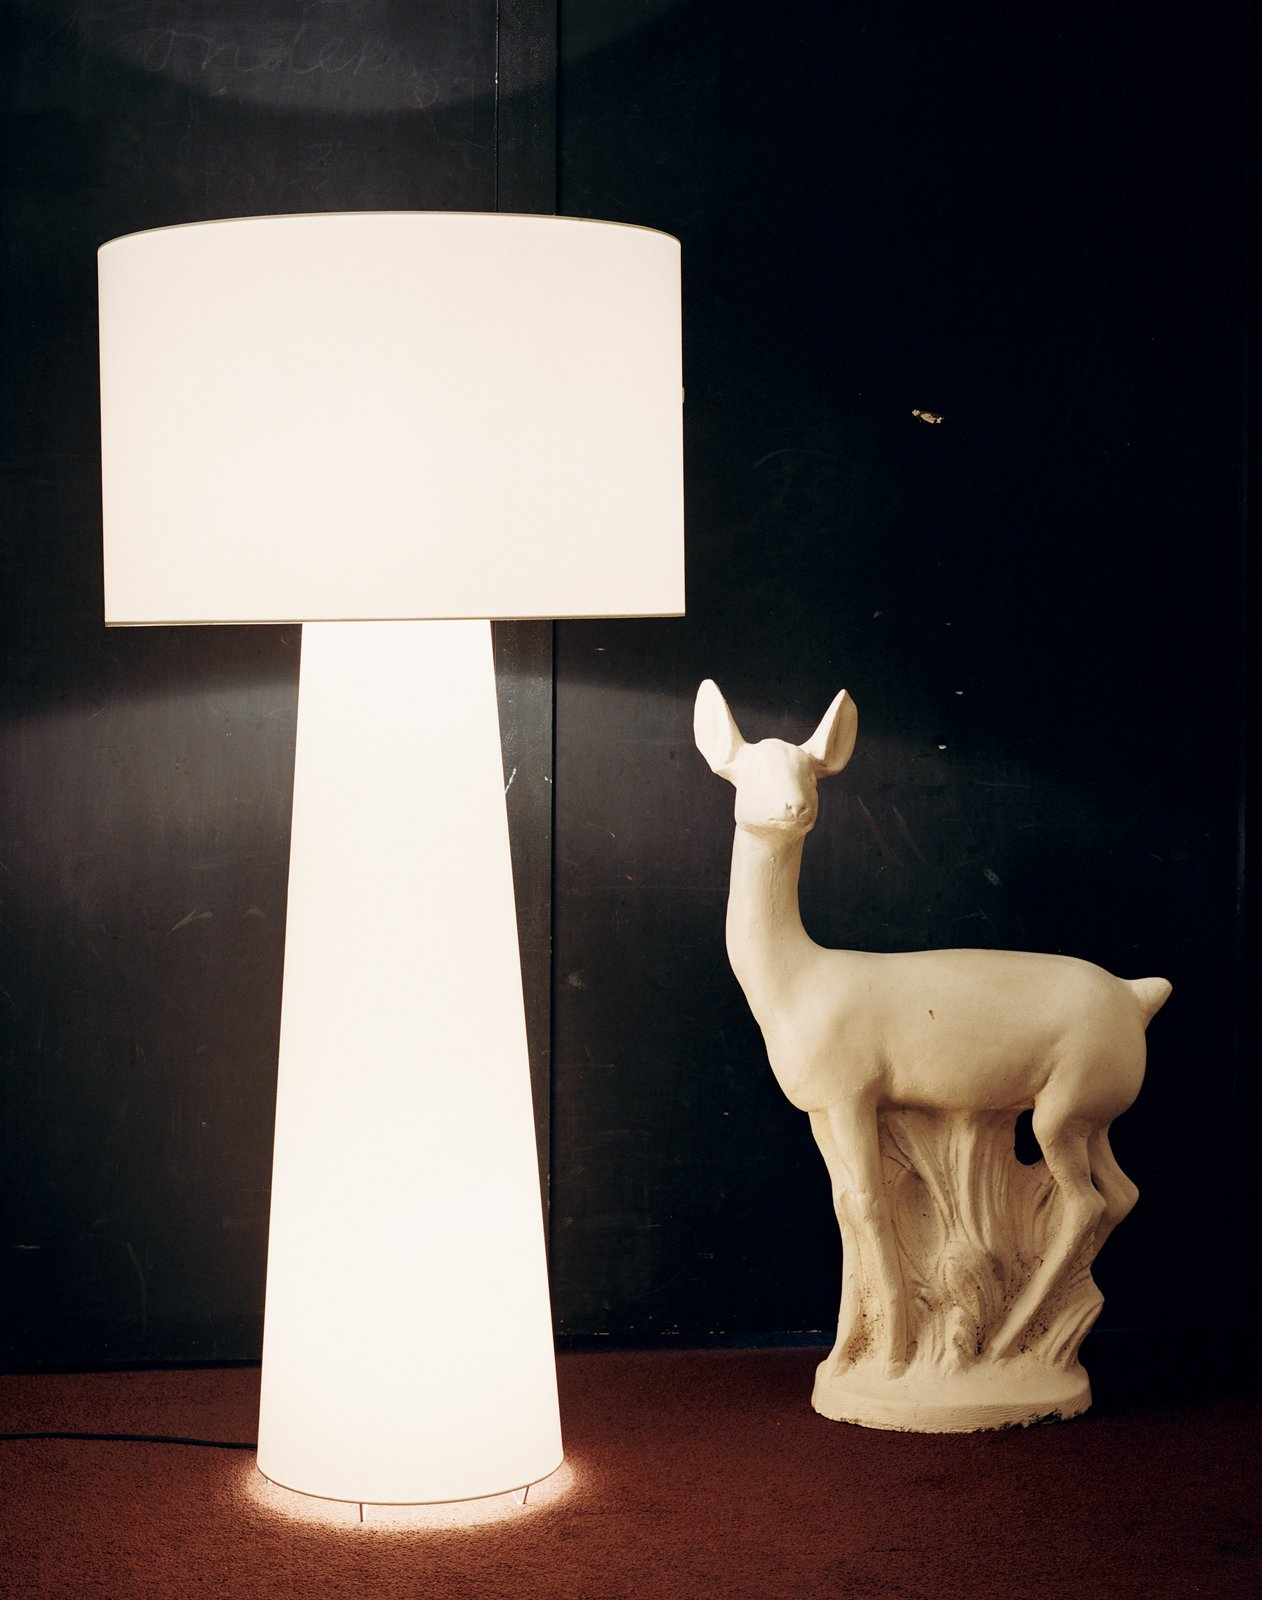 A luminous Big Shadow in white casts an ambient glow against a wall coated with blackboard paint and a chocolate brown carpet. The origin of the plaster deer figure has been forgotten. It was acquired as a possible inspiration source and has moved around the designer's studio and home ever since.  Photo 8 of 11 in Marcel Wanders